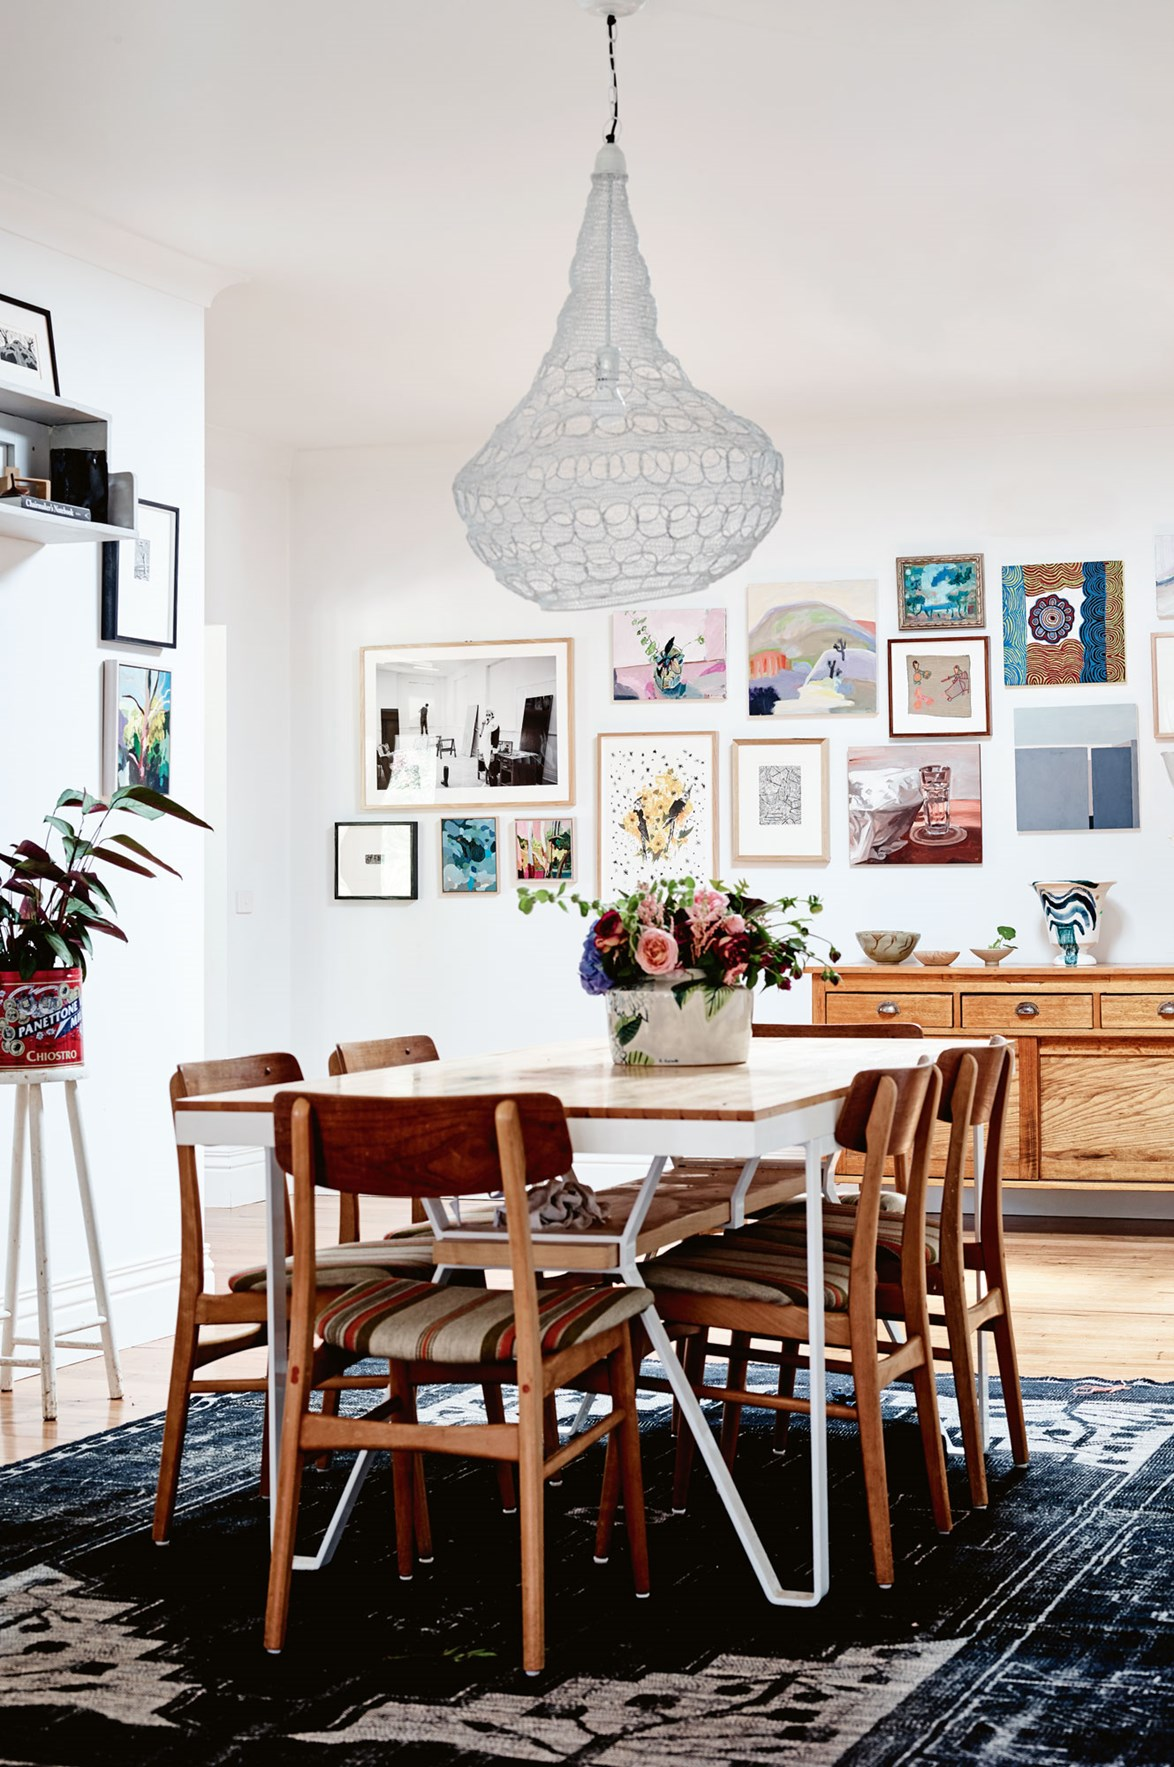 "<p>**COLOUR AND CHARACTER**<p> <P>In artist [Elizabeth Barnett's Macedon Ranges home](https://www.homestolove.com.au/weatherboard-farmhouse-14002|target=""_blank""), the dining room is the perfect place to put the family's interests and passions on display. While pared-back dining rooms may satisfy the masses, a dining room with colour and character will ensure guests always have something to strike up a conversation about.<p> <p>*Photo: Mark Roper*<p>"